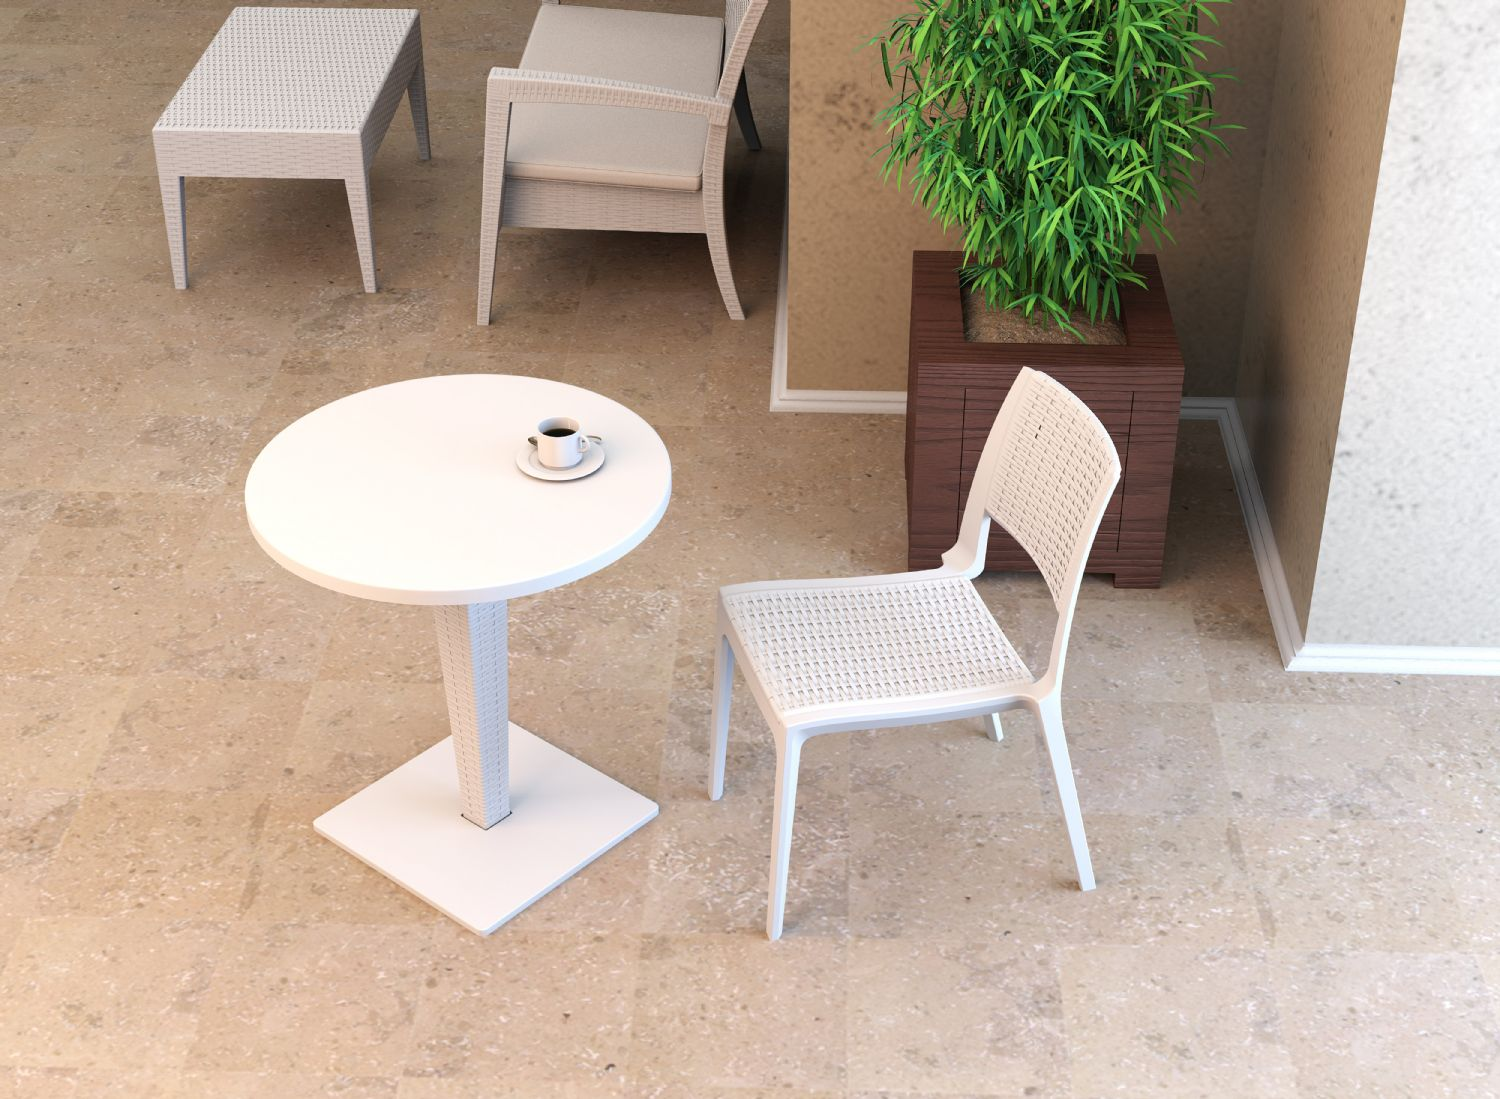 Verona Resin Wickerlook Dining Chair White ISP830-WH - 10